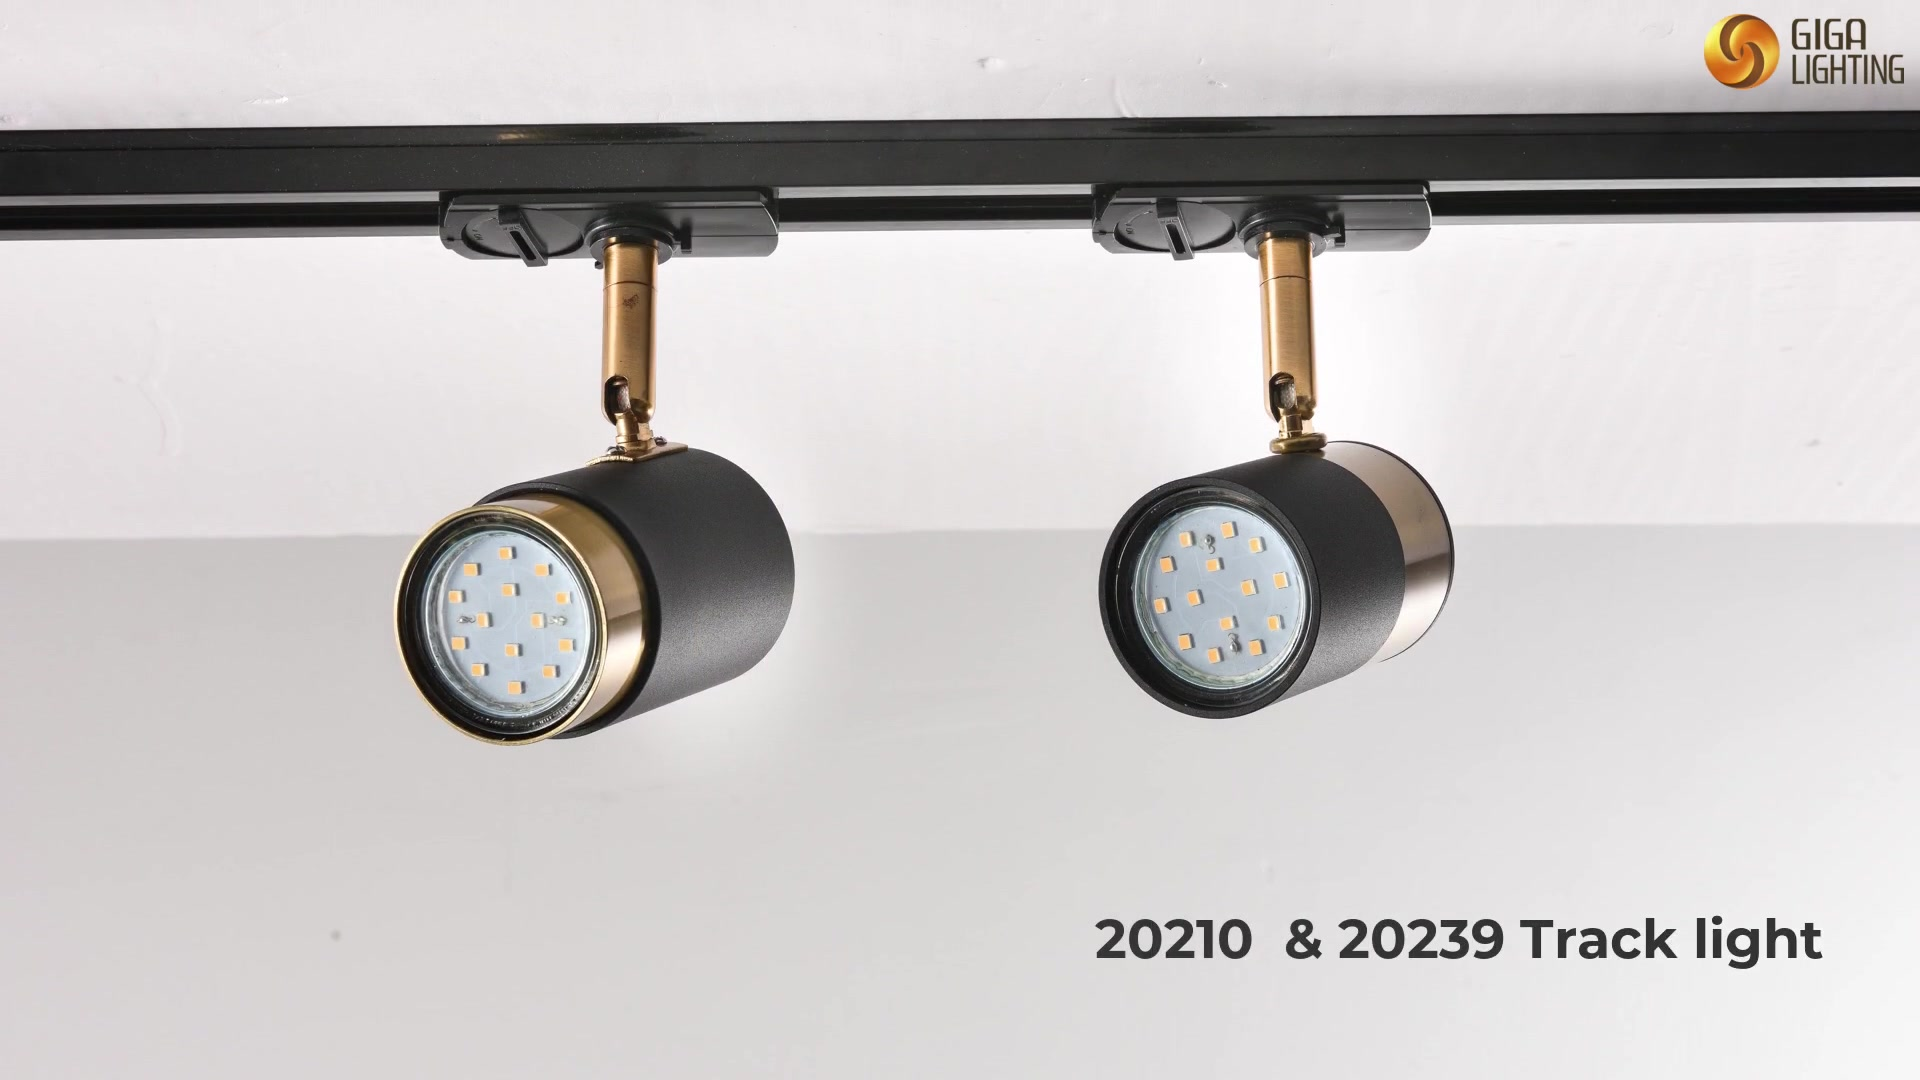 Best-selling decorative track lighting 20210 & 20239